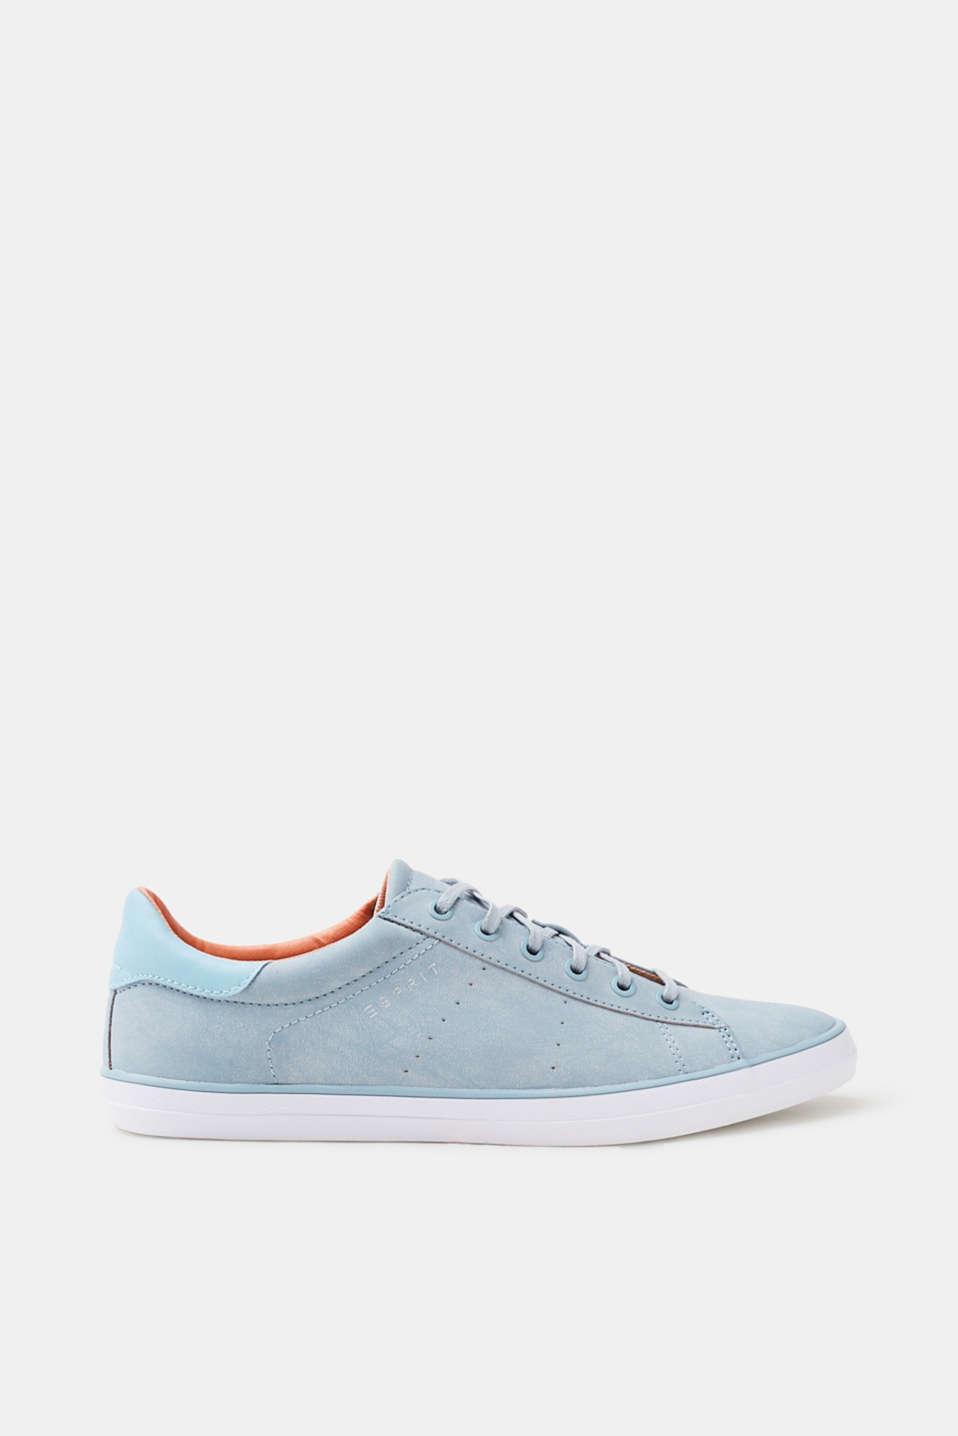 The sneaker essential for your everyday look! These trainers stand out thanks to their faux nubuck leather.